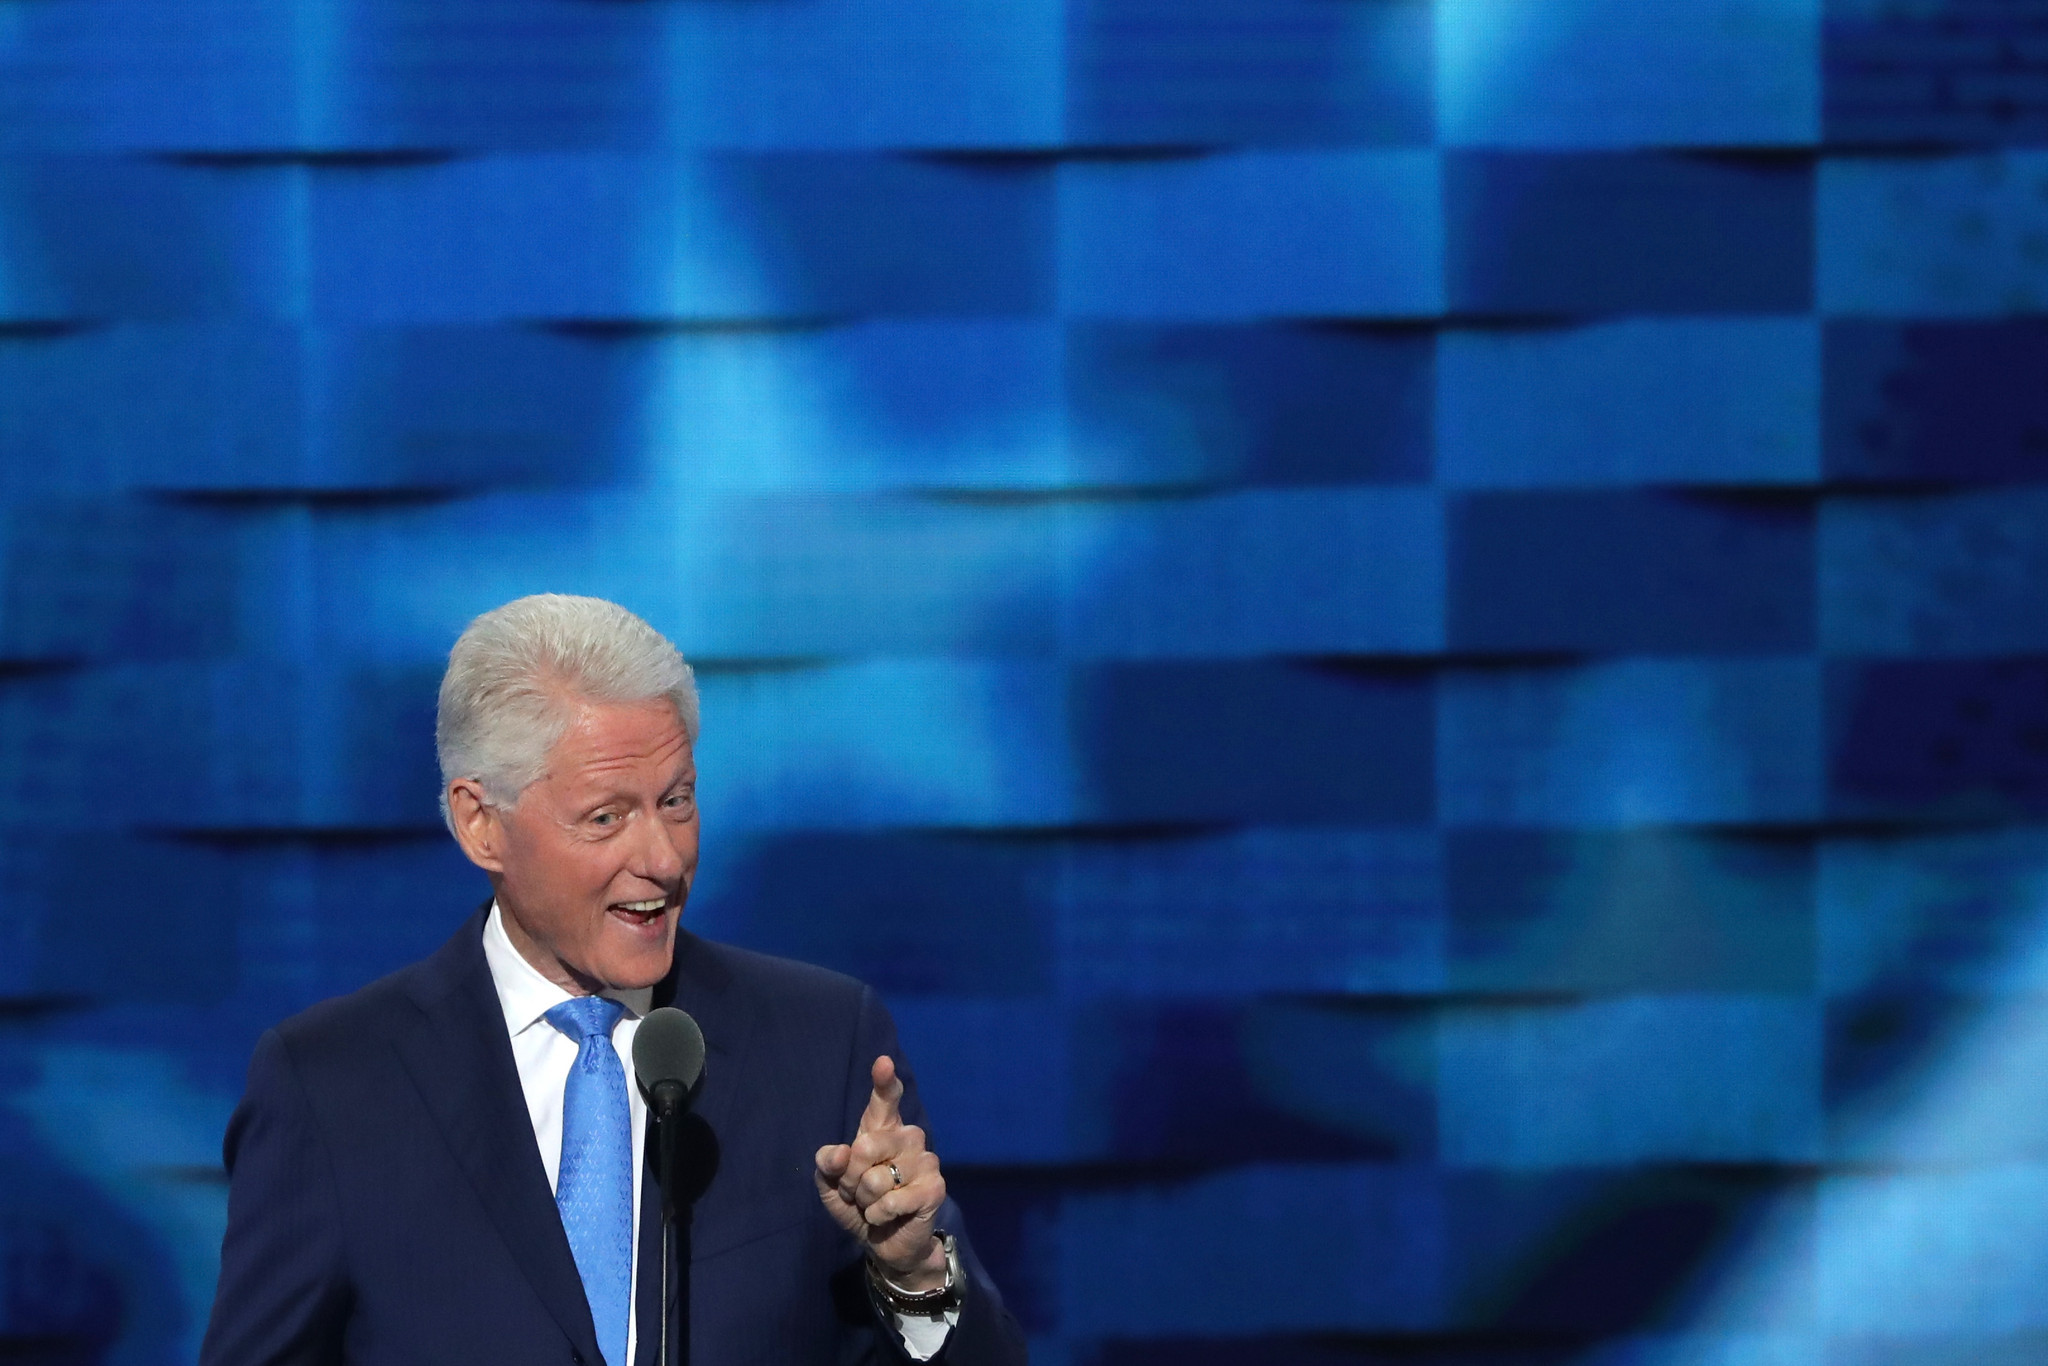 Did Bill Clinton take a sly dig at Cubs fans during DNC ...